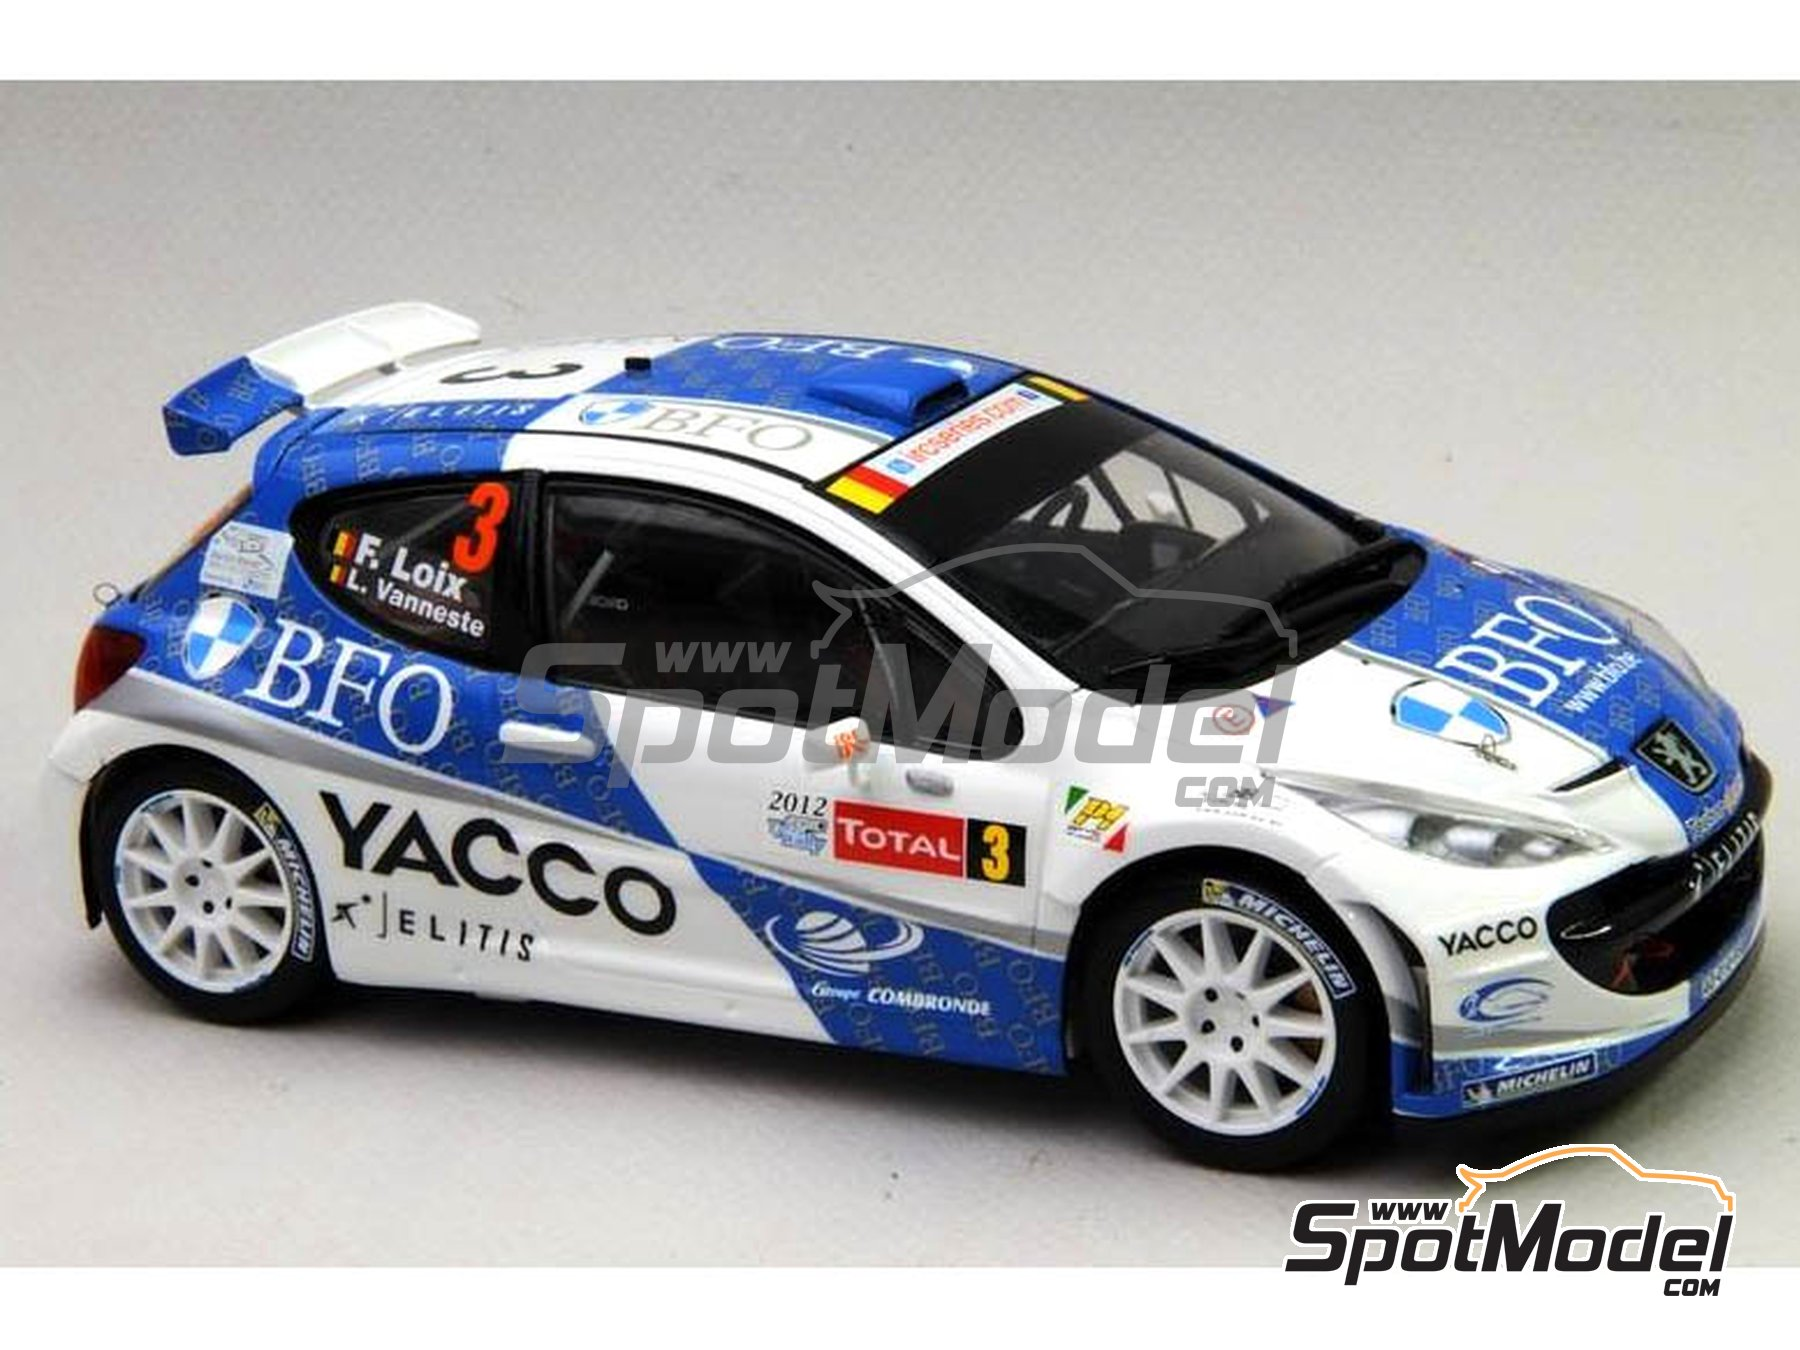 Image 12: Peugeot 207 S2000 BFO Yacco - Ypres Rally 2012 | Marking / livery in 1/24 scale manufactured by Renaissance Models (ref. TK24-338)